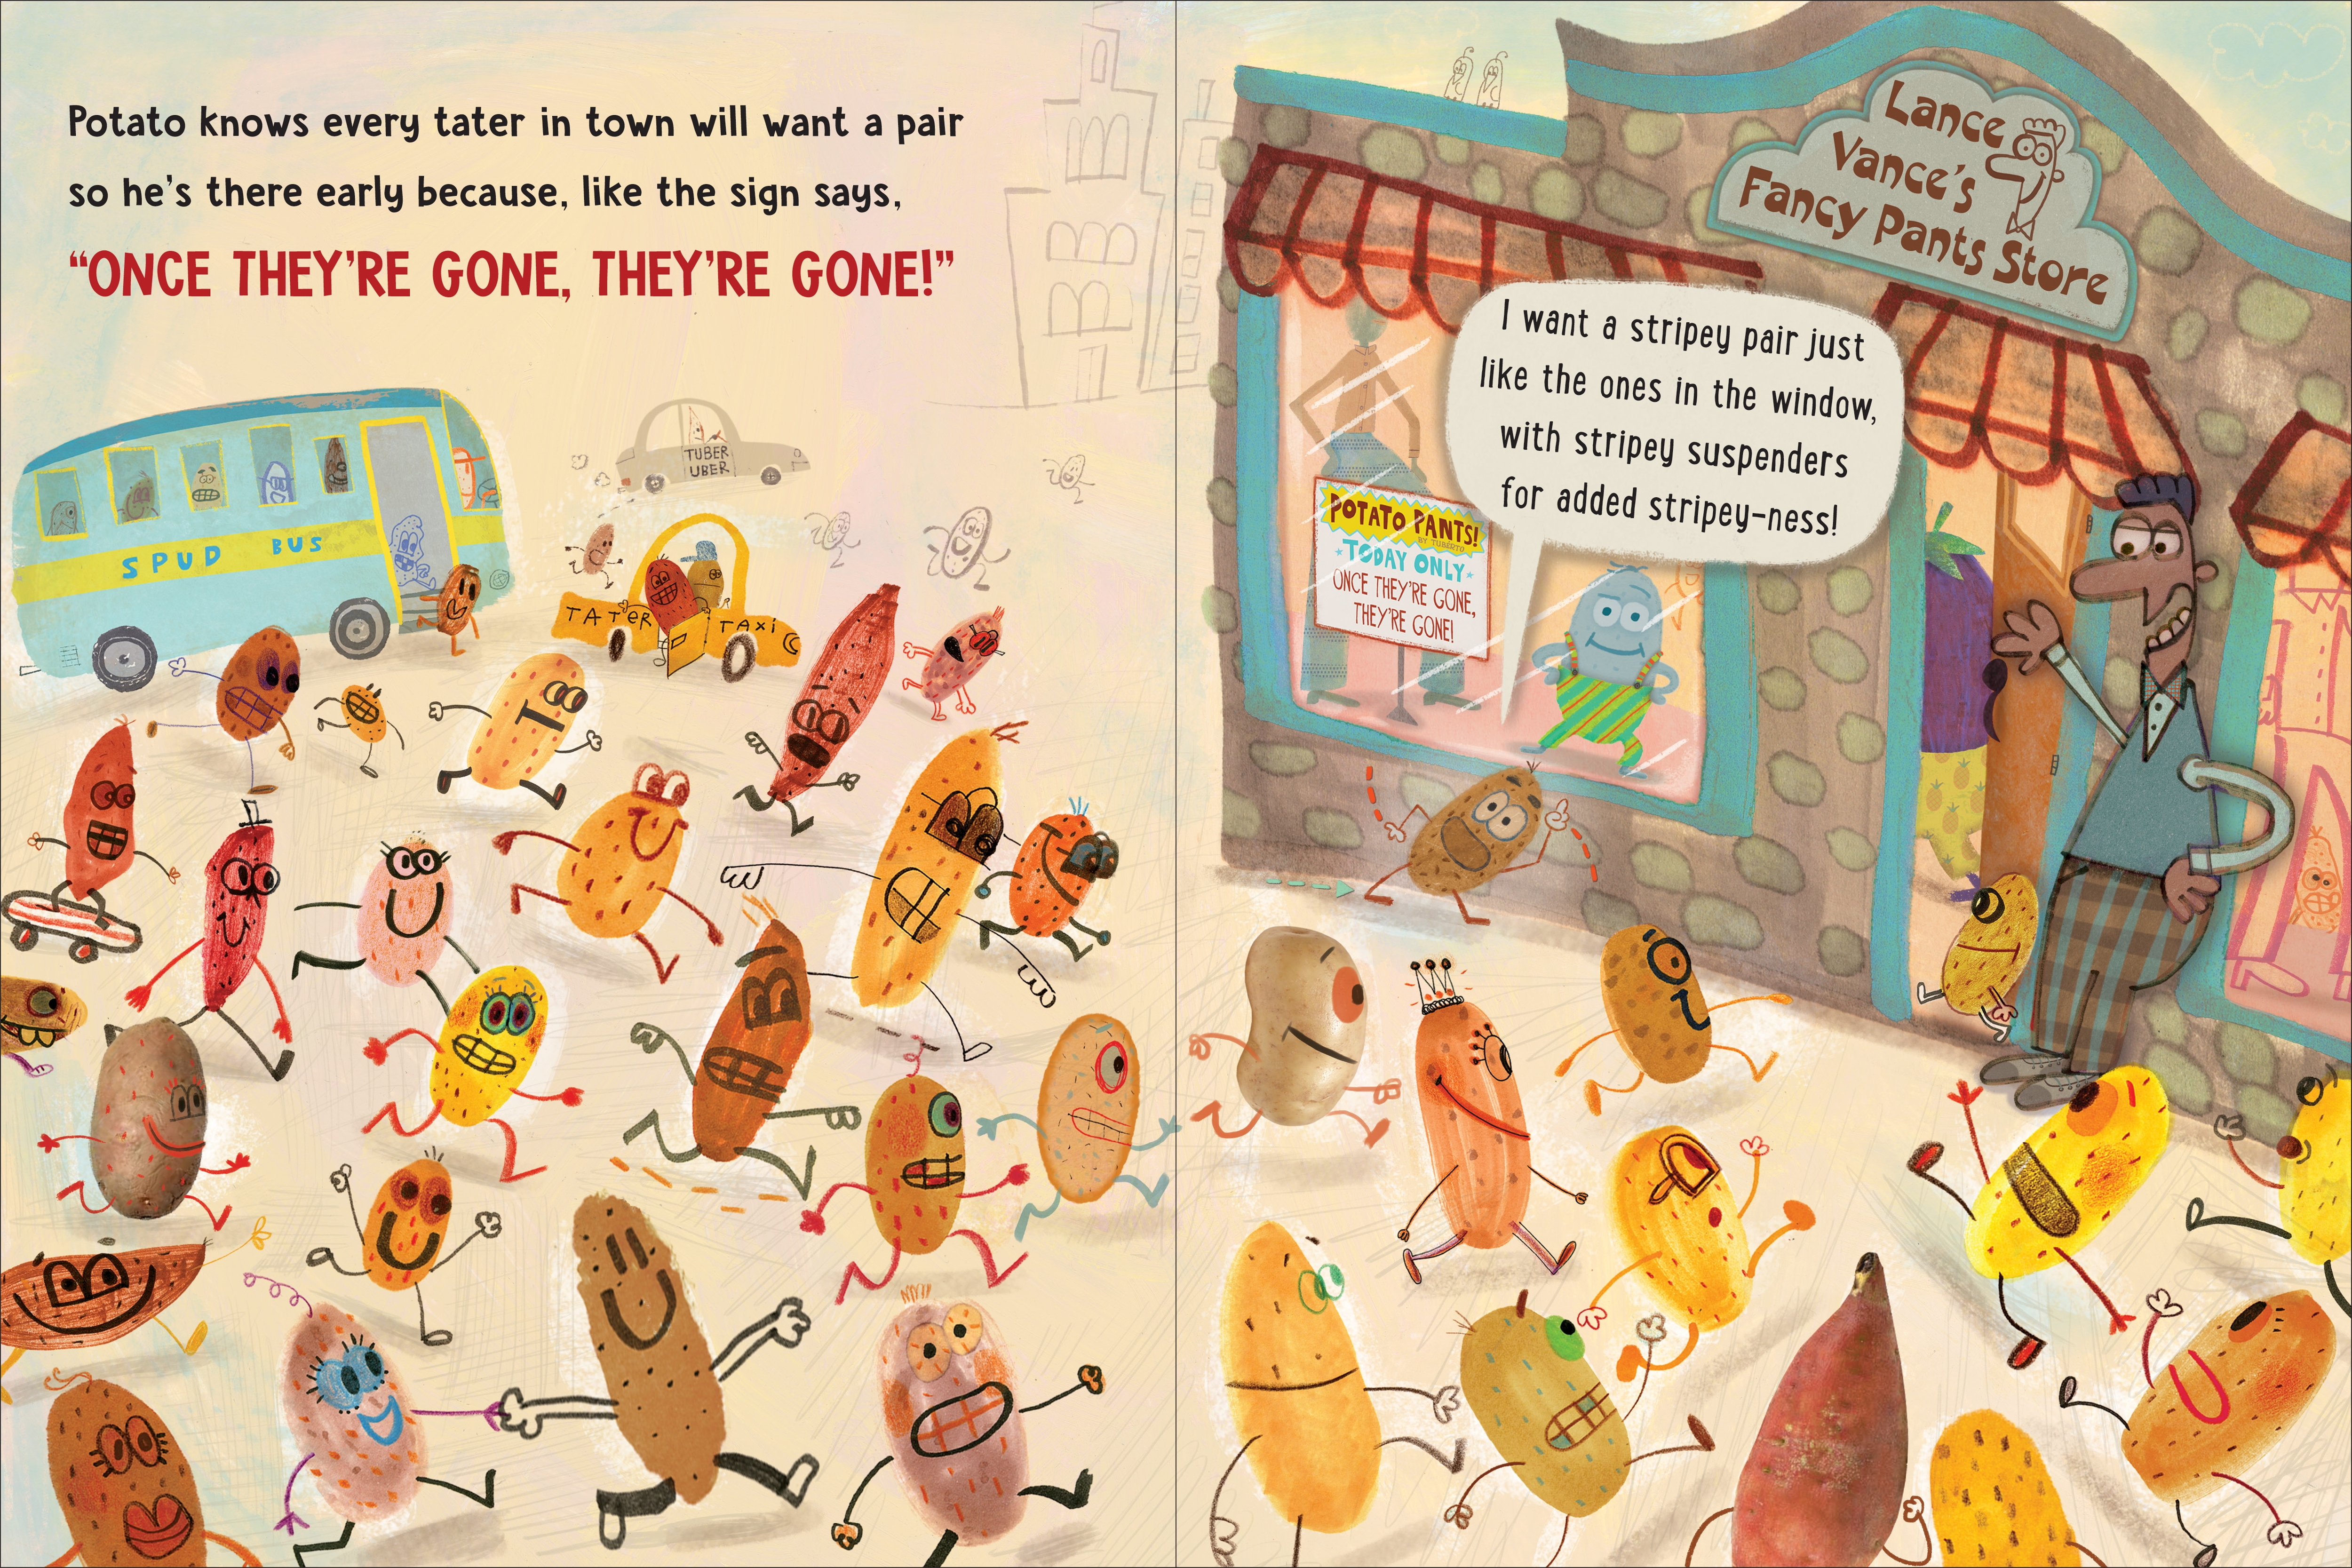 celebrate-picture-books-picture-book-review-potato-pants-storefront